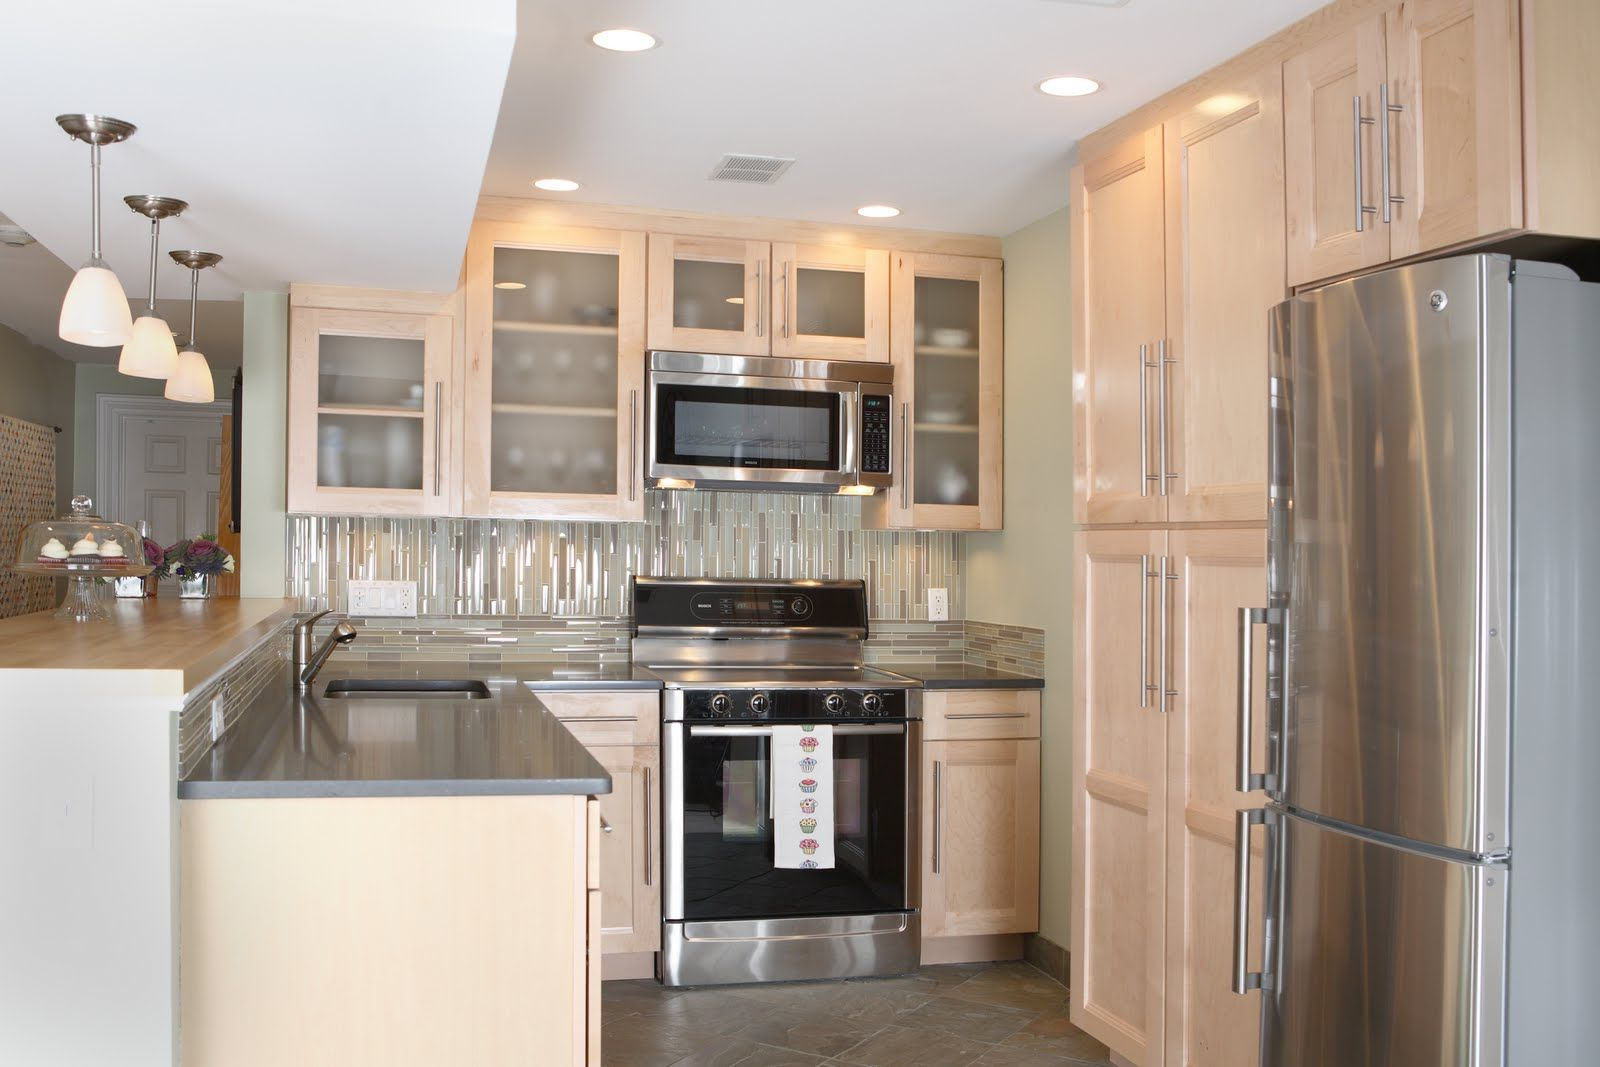 small condo remodeling ideas save small condo kitchen remodeling ideas hmd online interior on kitchen remodel ideas id=88354